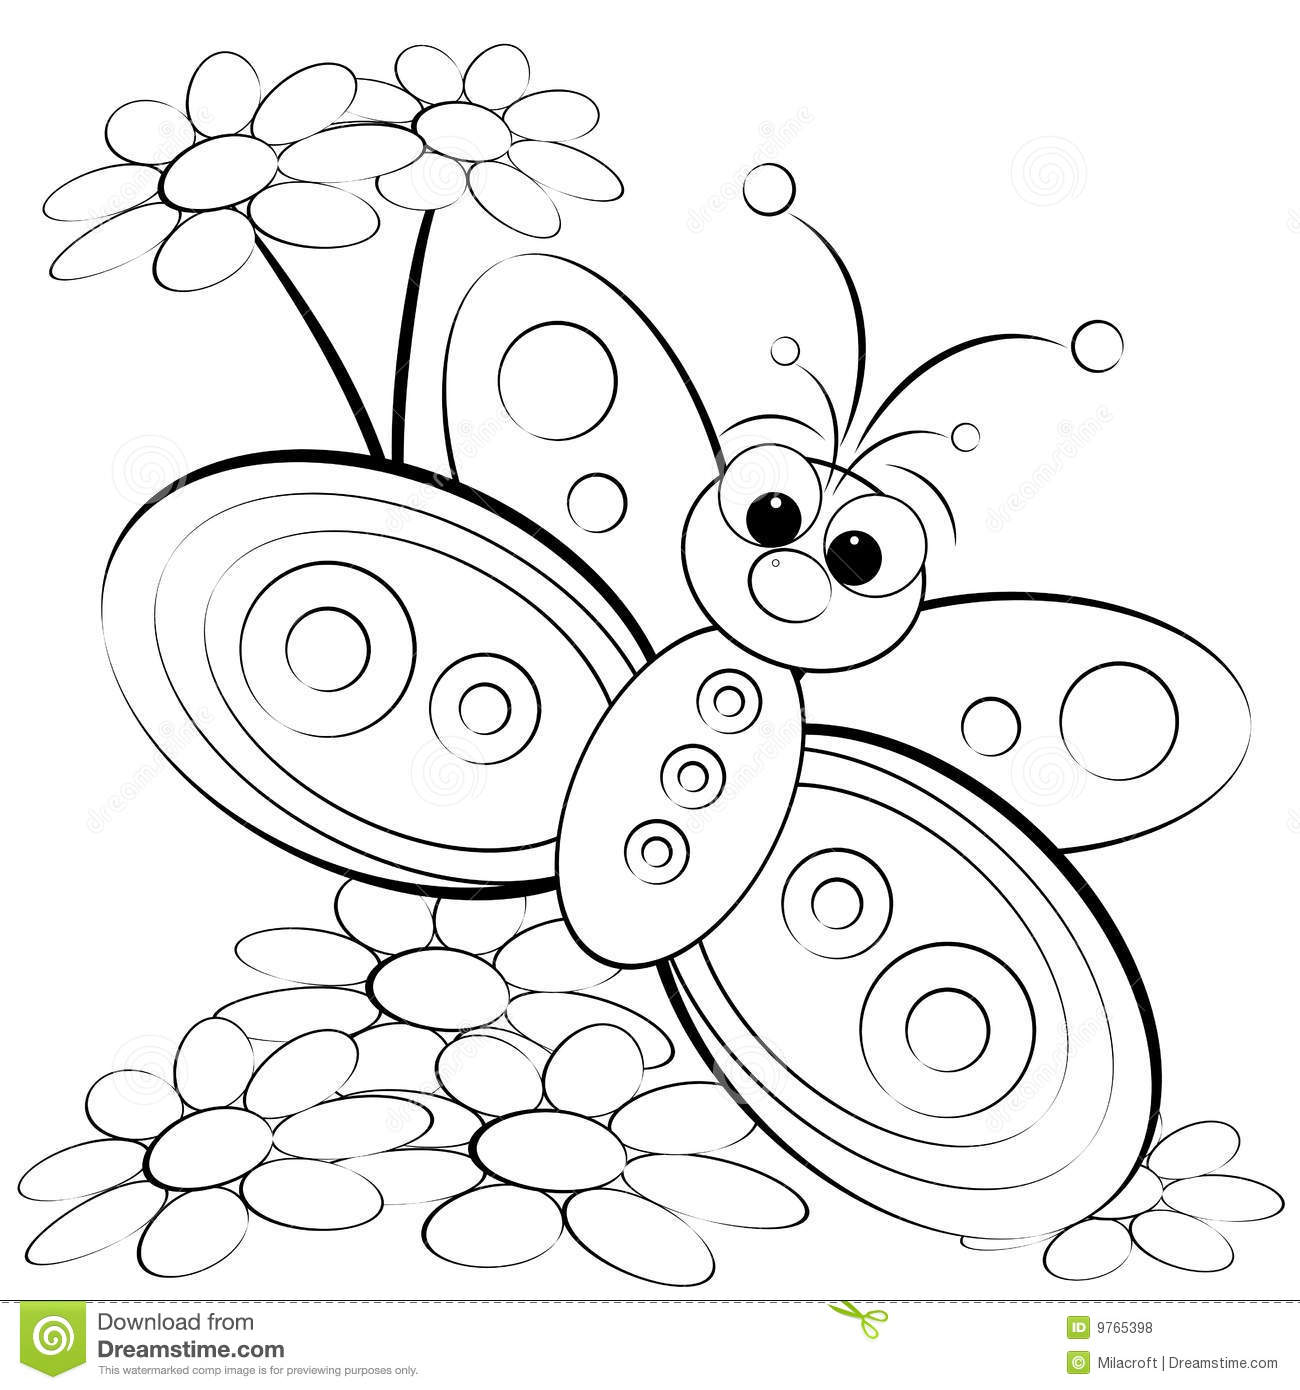 Coloring Page Butterfly And Daisy Royalty Free Stock Photos Image 9765398